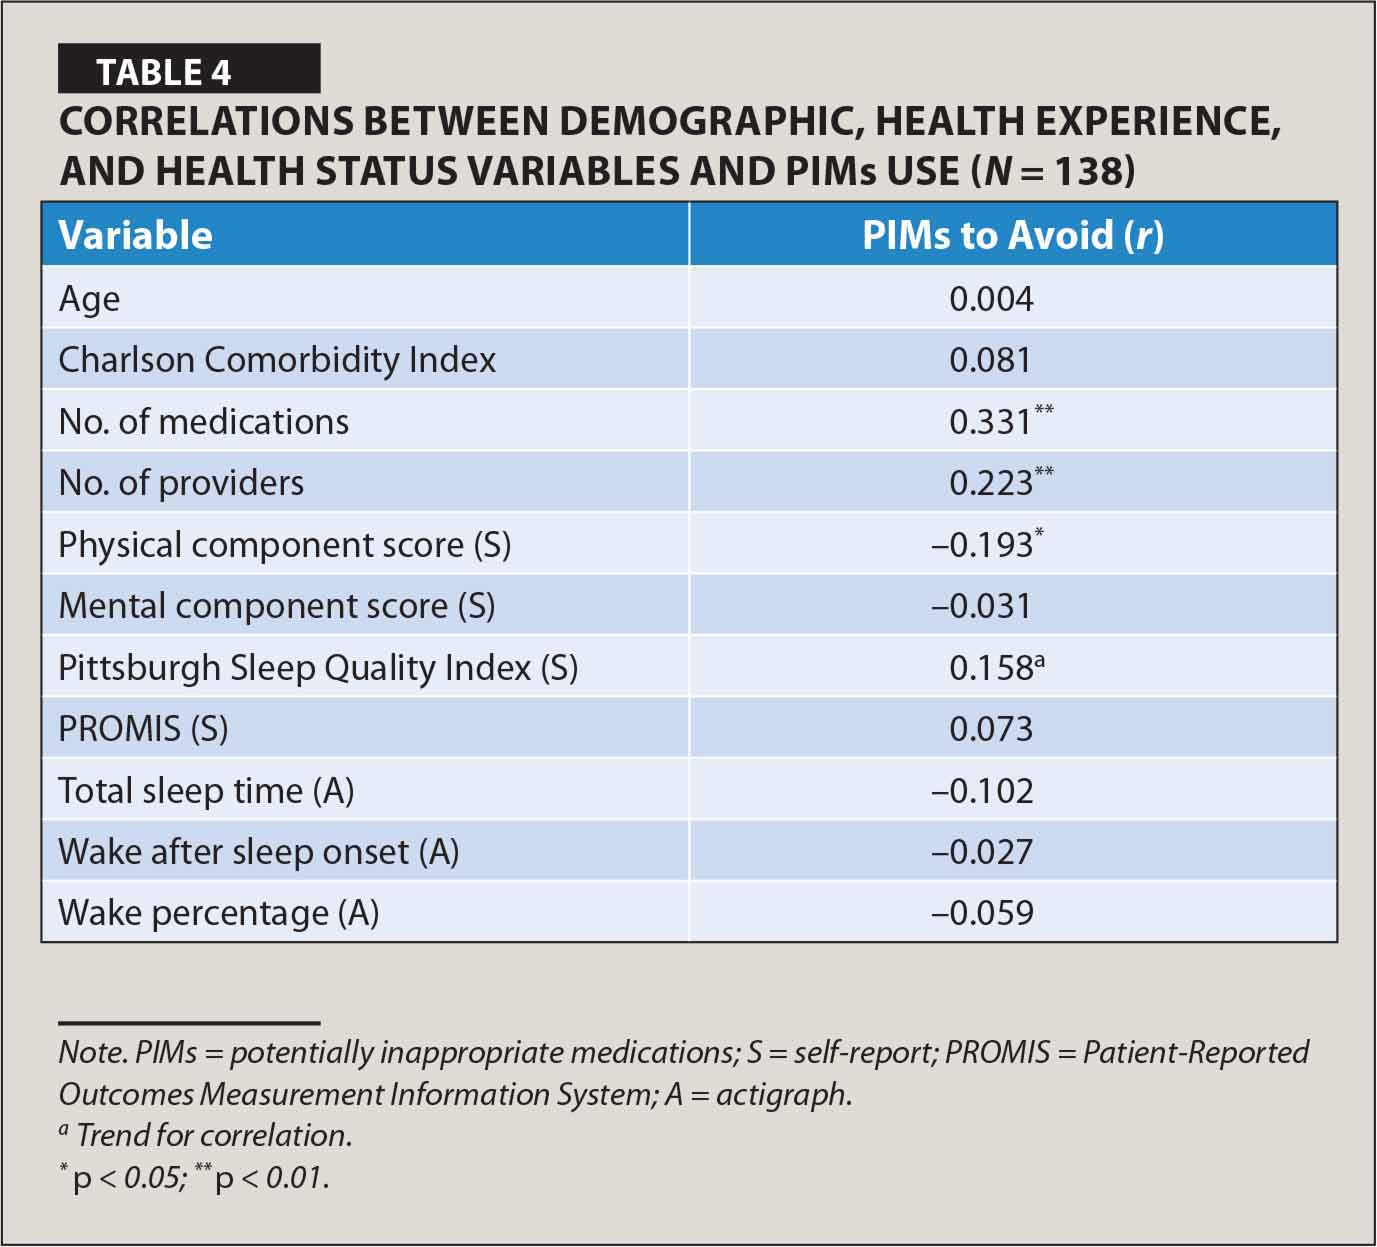 Correlations Between Demographic, Health Experience, and Health Status Variables and PIMs Use (N = 138)